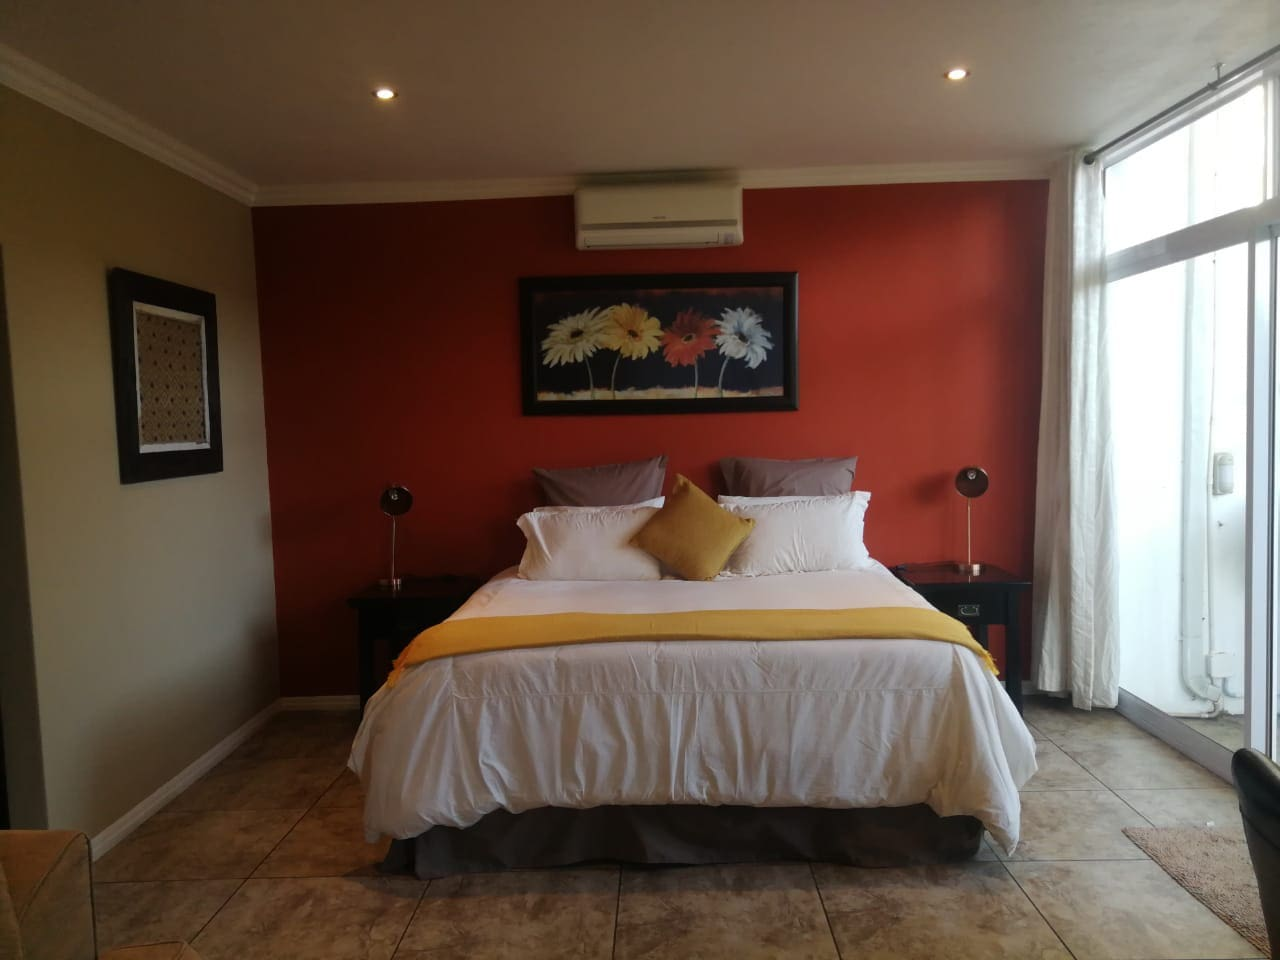 Guests will have a luxurious nights rest on a Kingsize bed with the highest quality Egyptian cotton linen, a down duvet and soft and hard pillows for you to choose from.